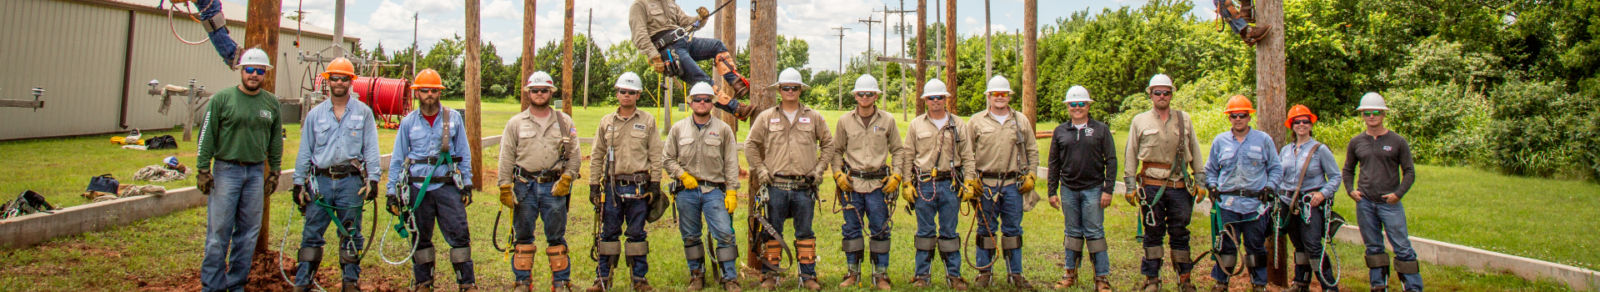 Banner image of Oklahoma Electric Cooperative Linemen in full gear, in front of power poles